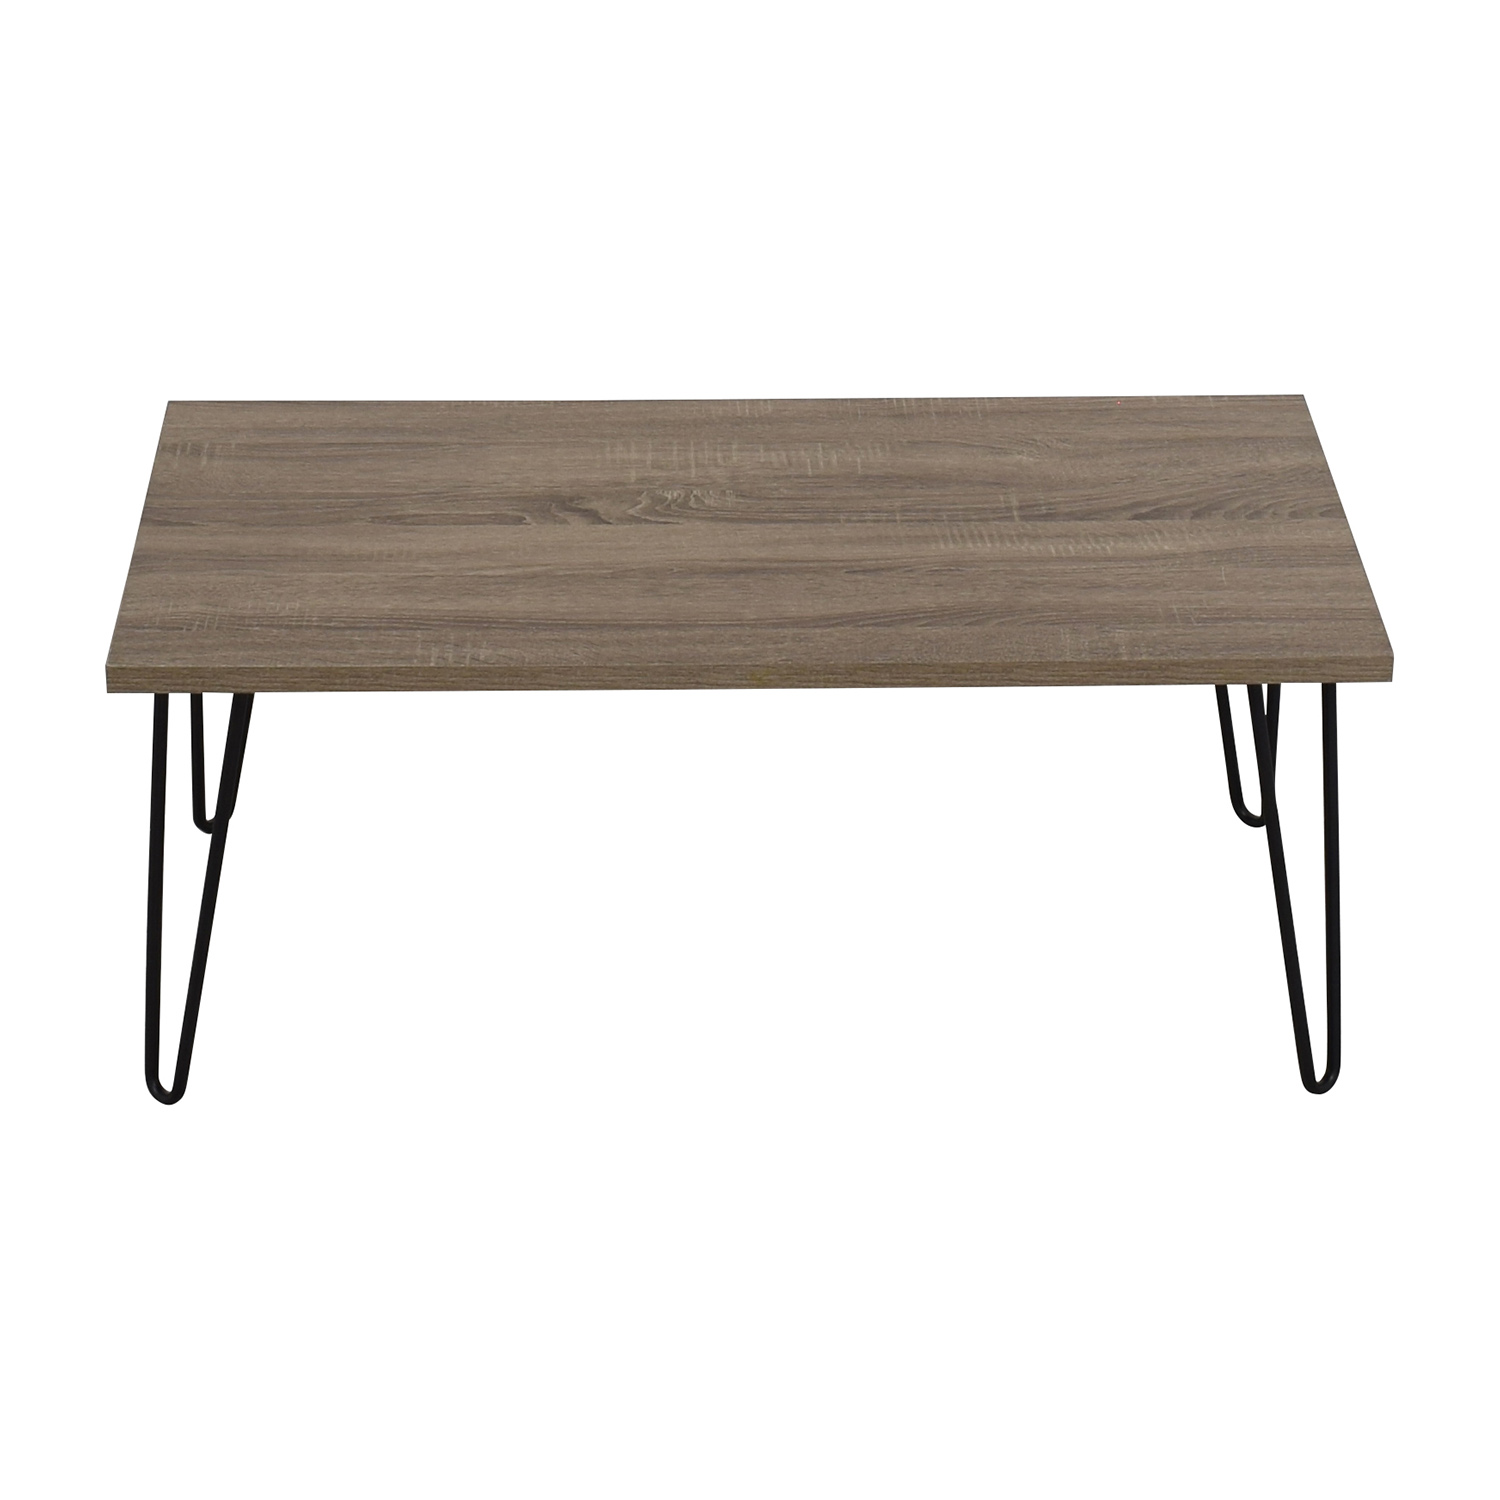 Altra Furniture Altra Furniture Owen Retro Coffee Table nyc